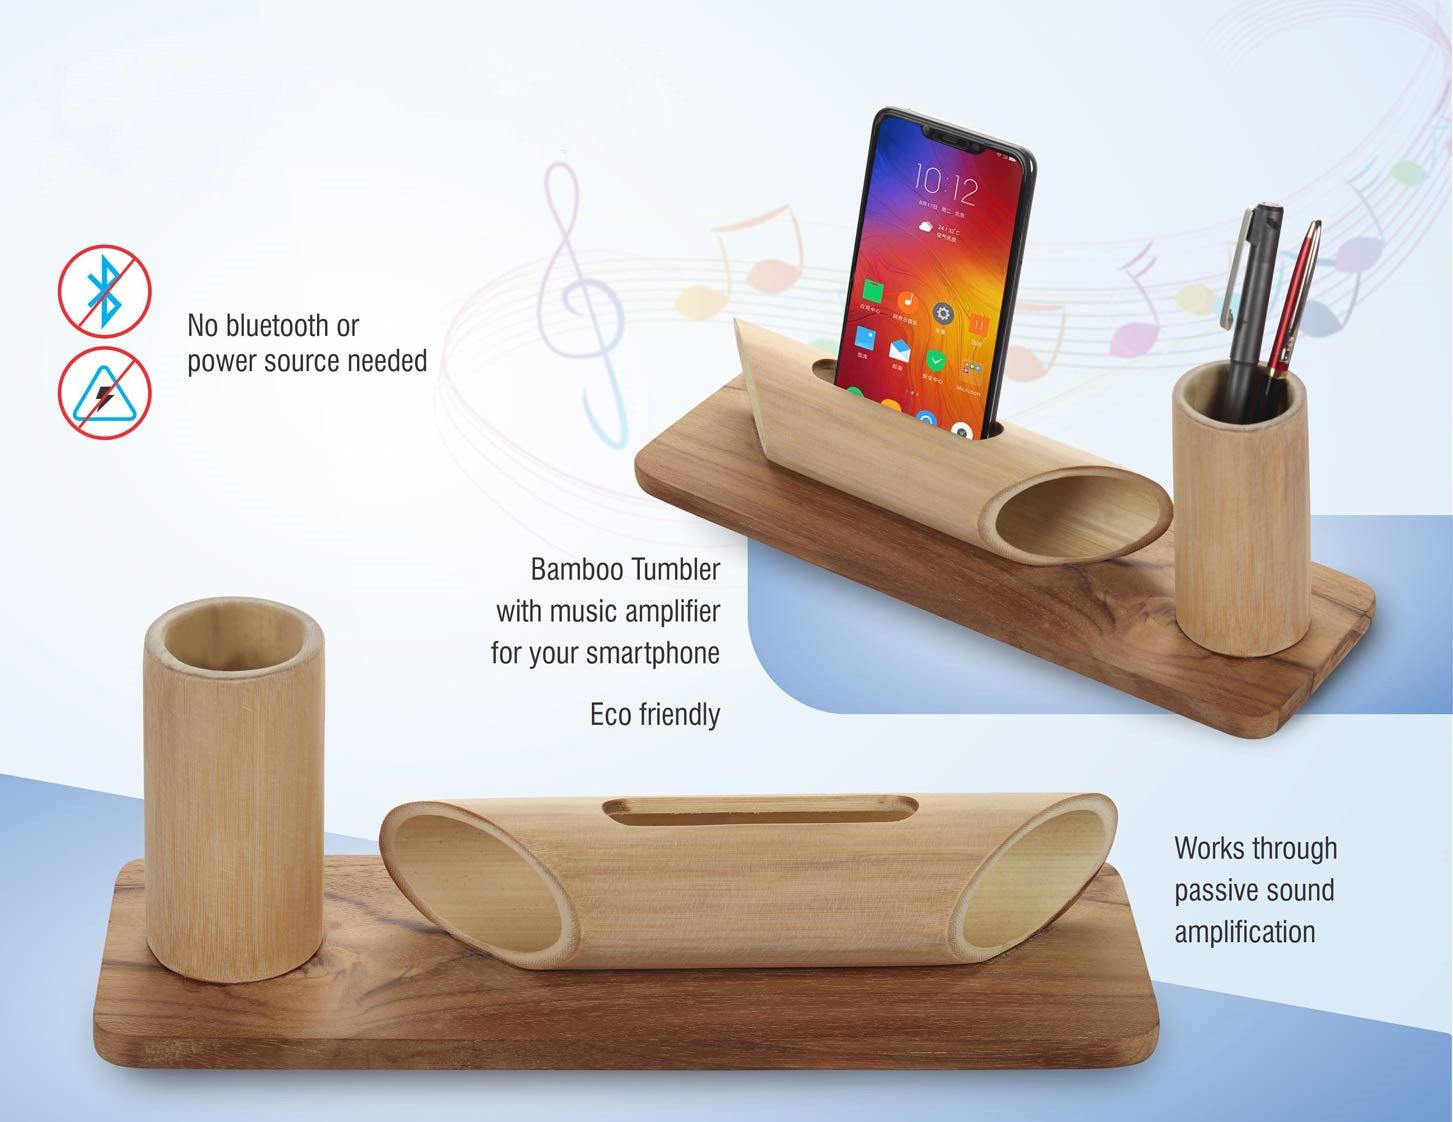 Power Plus Bamboo Set: Bamboo Tumbler With Music Amplifier For Smartphones | Universal Design Q34 Wooden